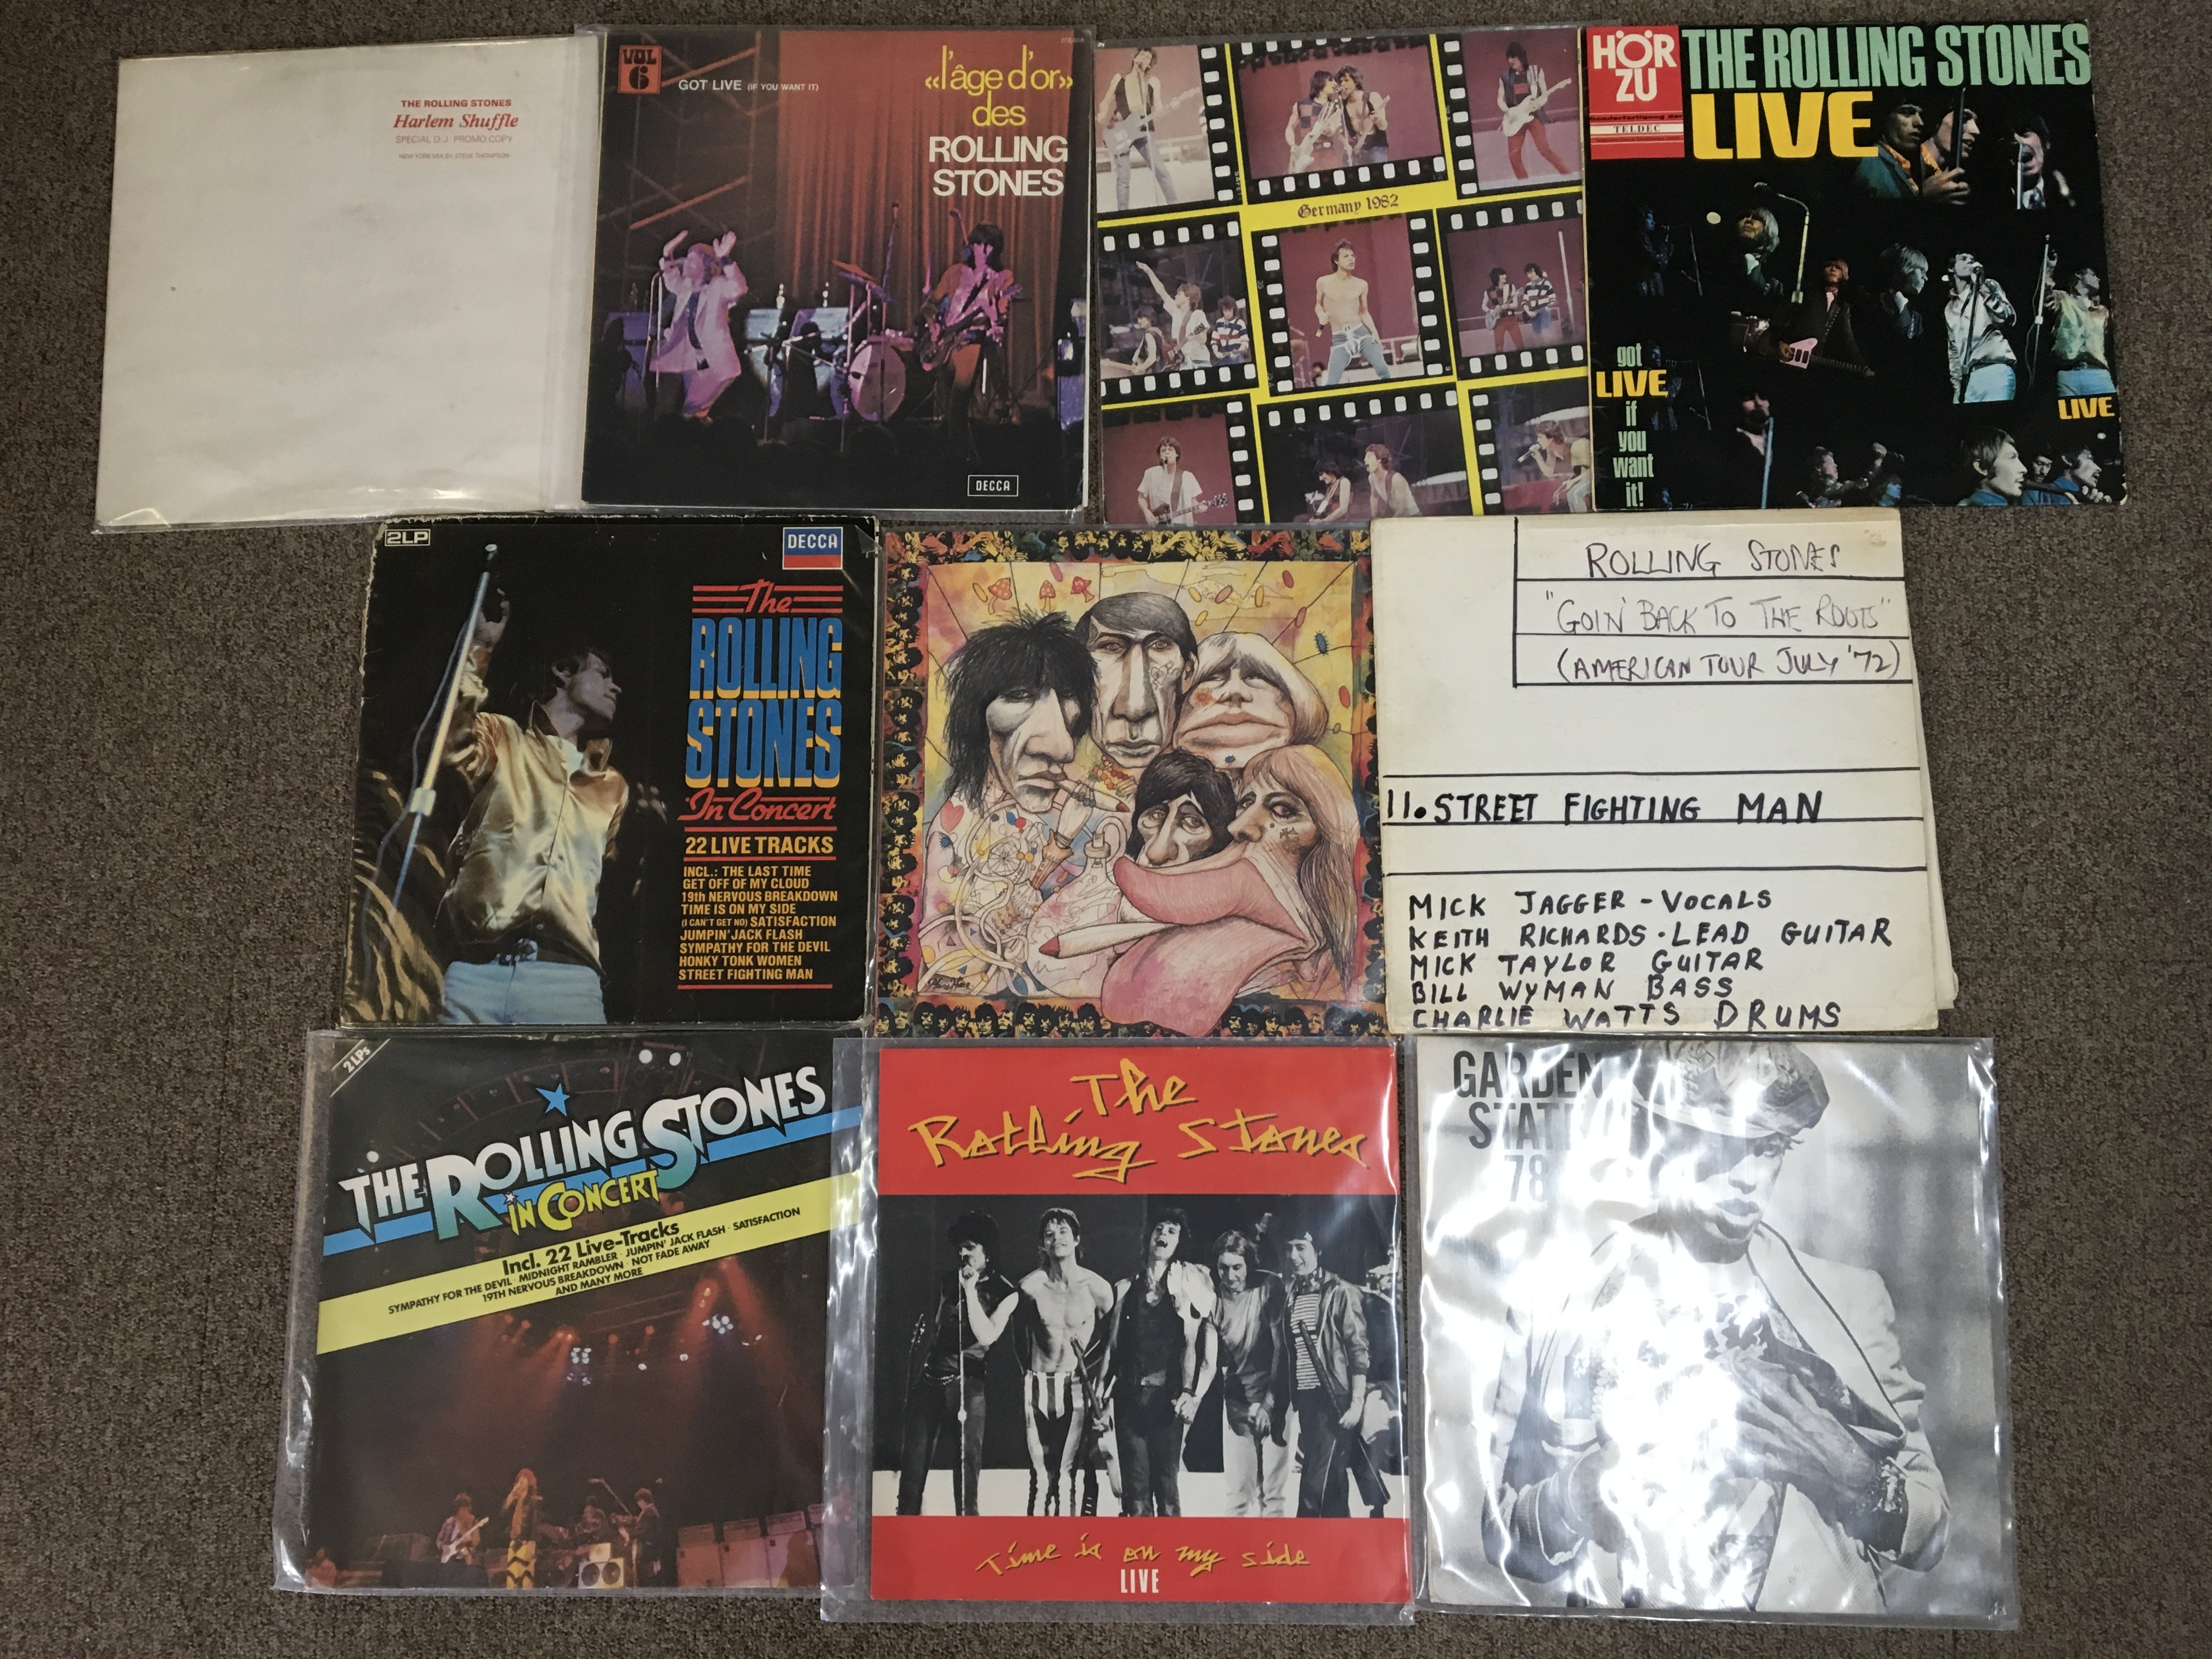 Ten Rolling Stones vinyl records, some live albums, Harlem Shuffle New York Mix, L'Age D'Or des